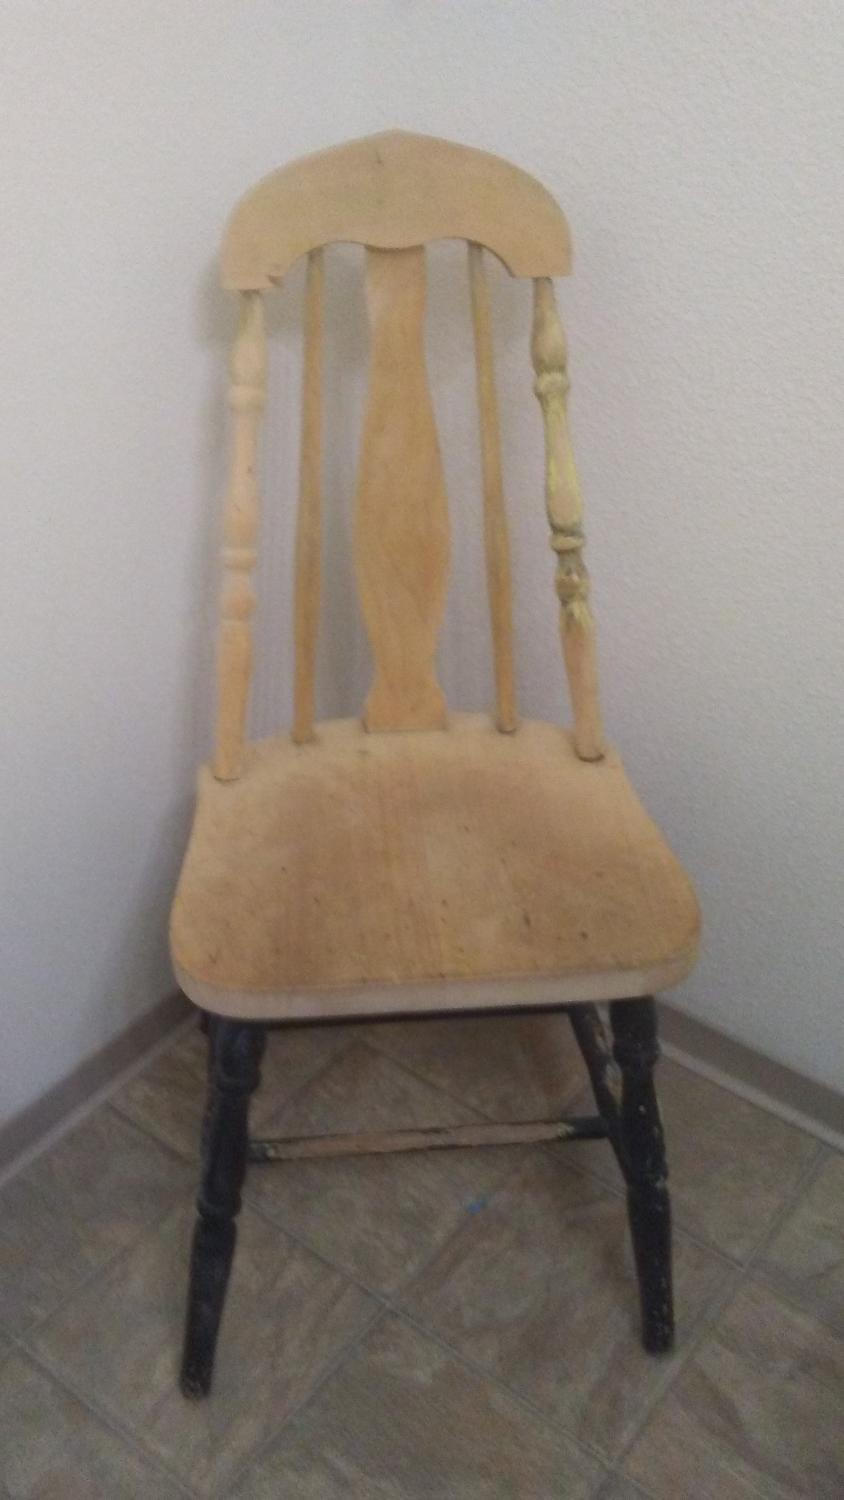 Antique Wooden Chairs >> Antique Wooden Chair